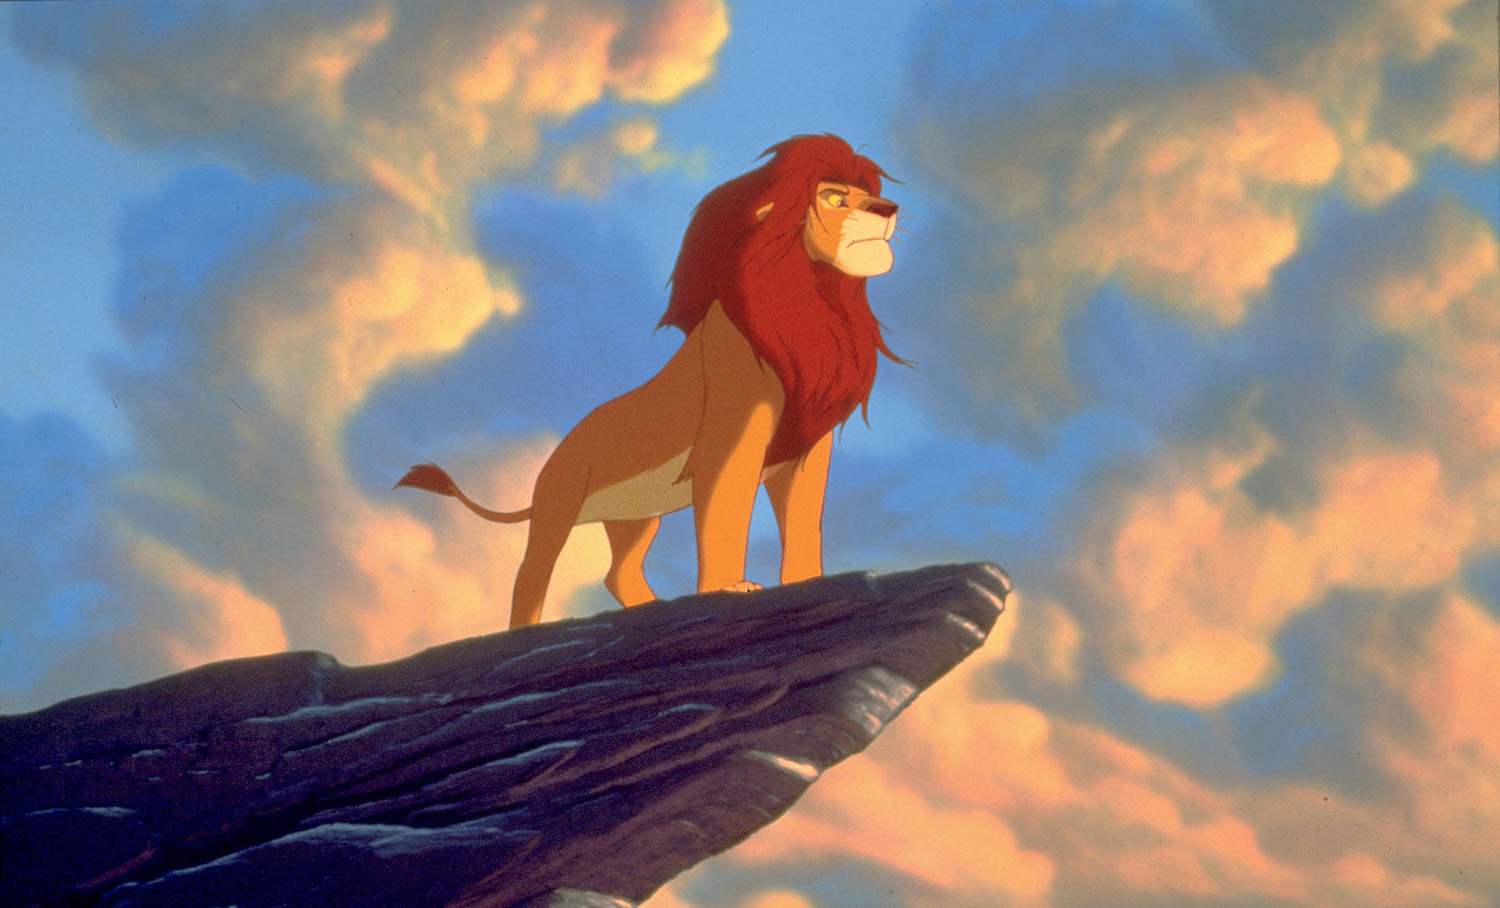 Animated Lion Wallpaper Hd 4k The Lion King Wallpapers High Quality Download Free